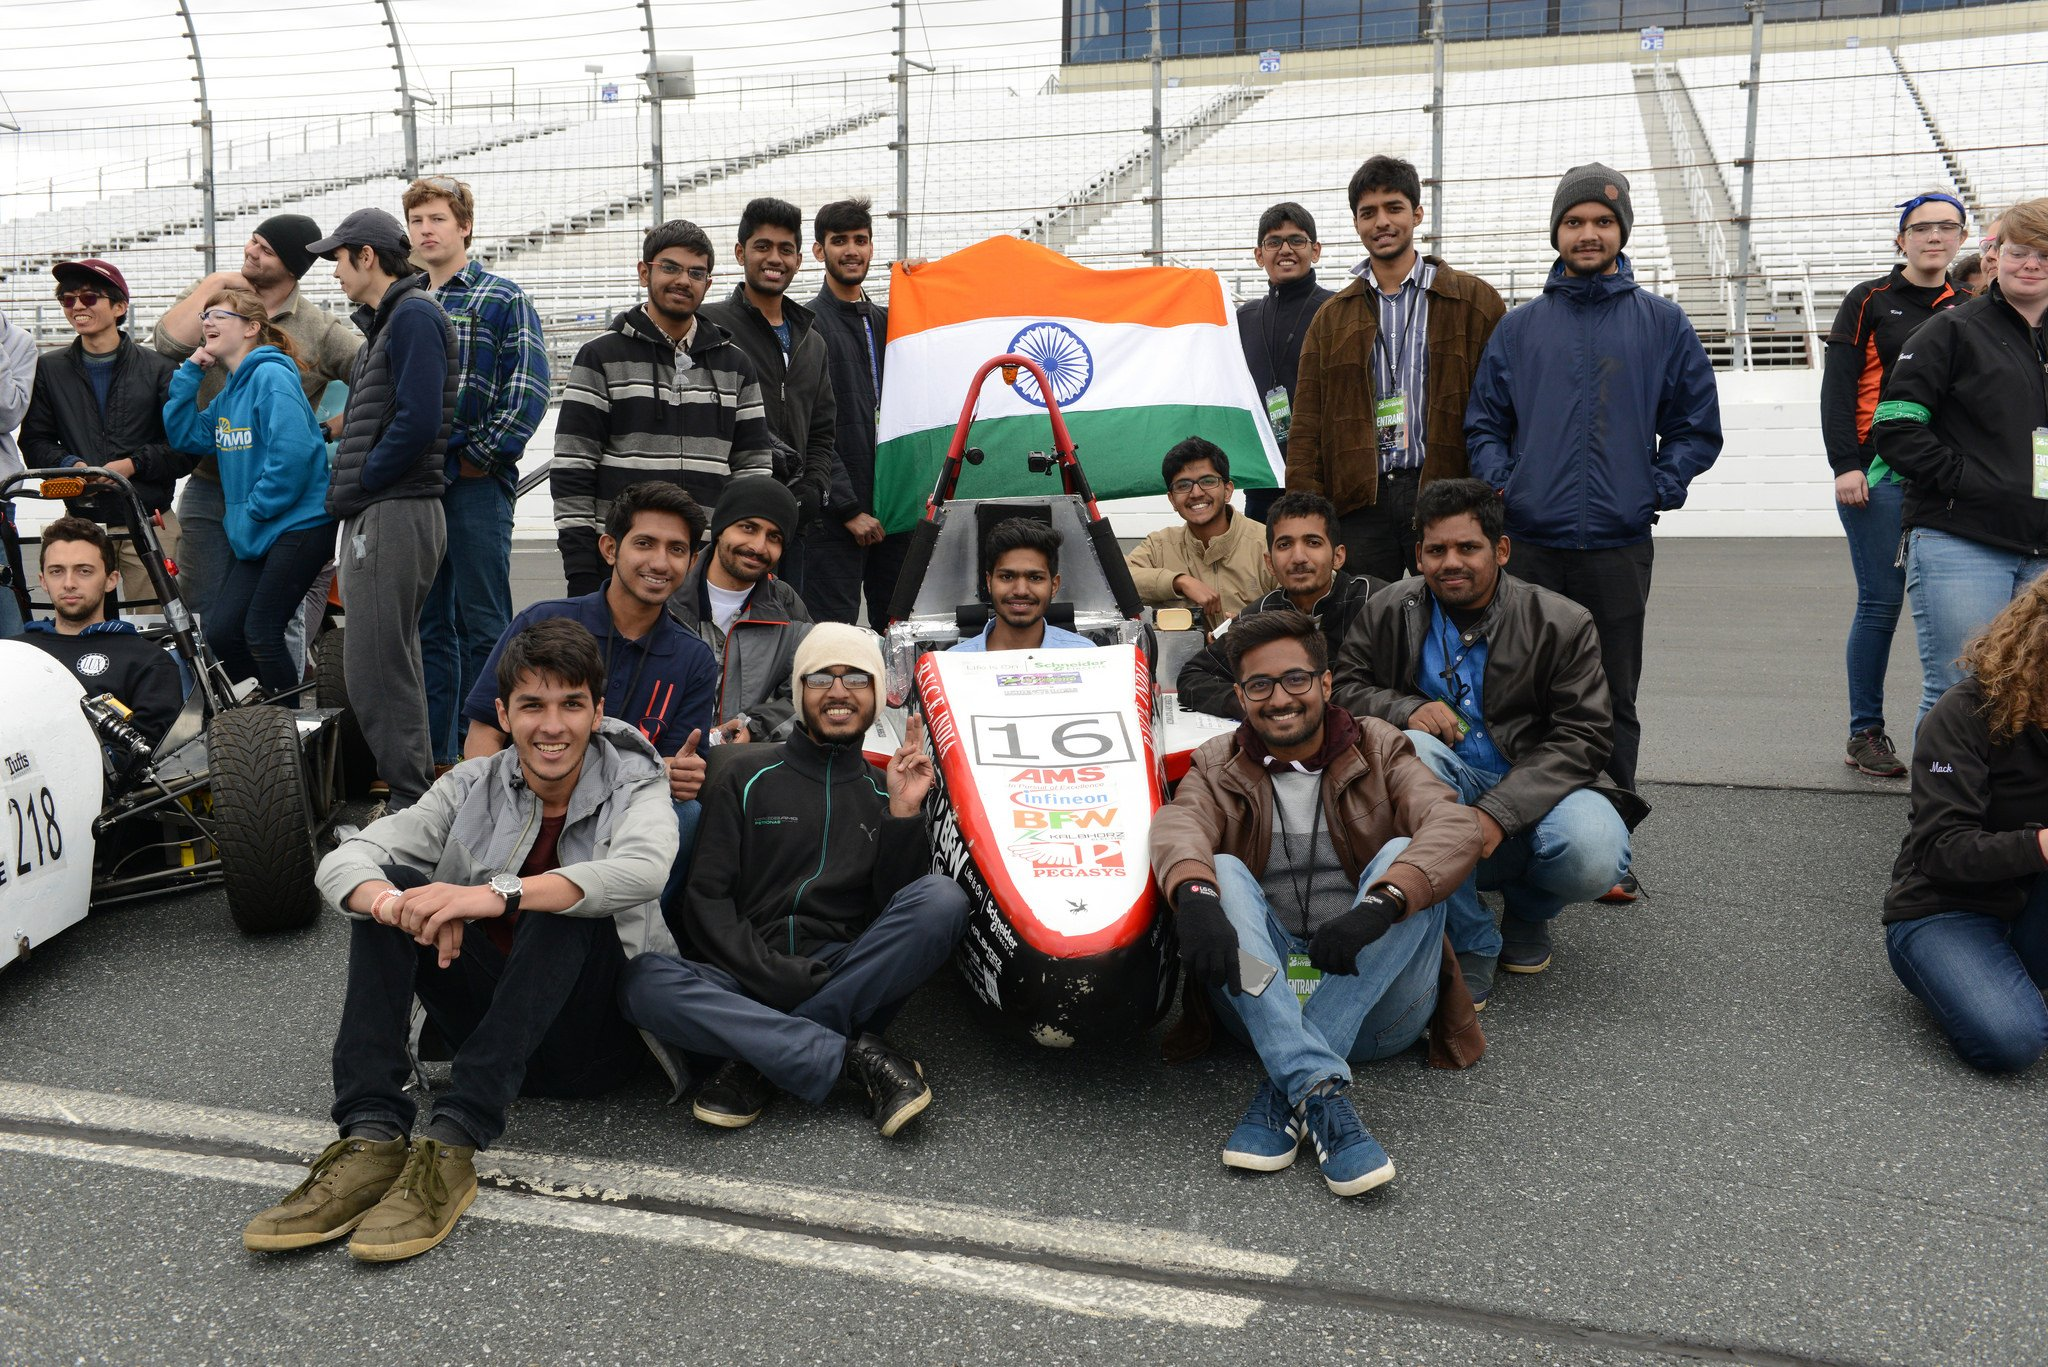 Congrats to @ashwaracing for 2nd place in the hybrid competition at #FormulaHybrid17! from RV College of Engineering @timesofindia https://t.co/F5AHoPvW1r